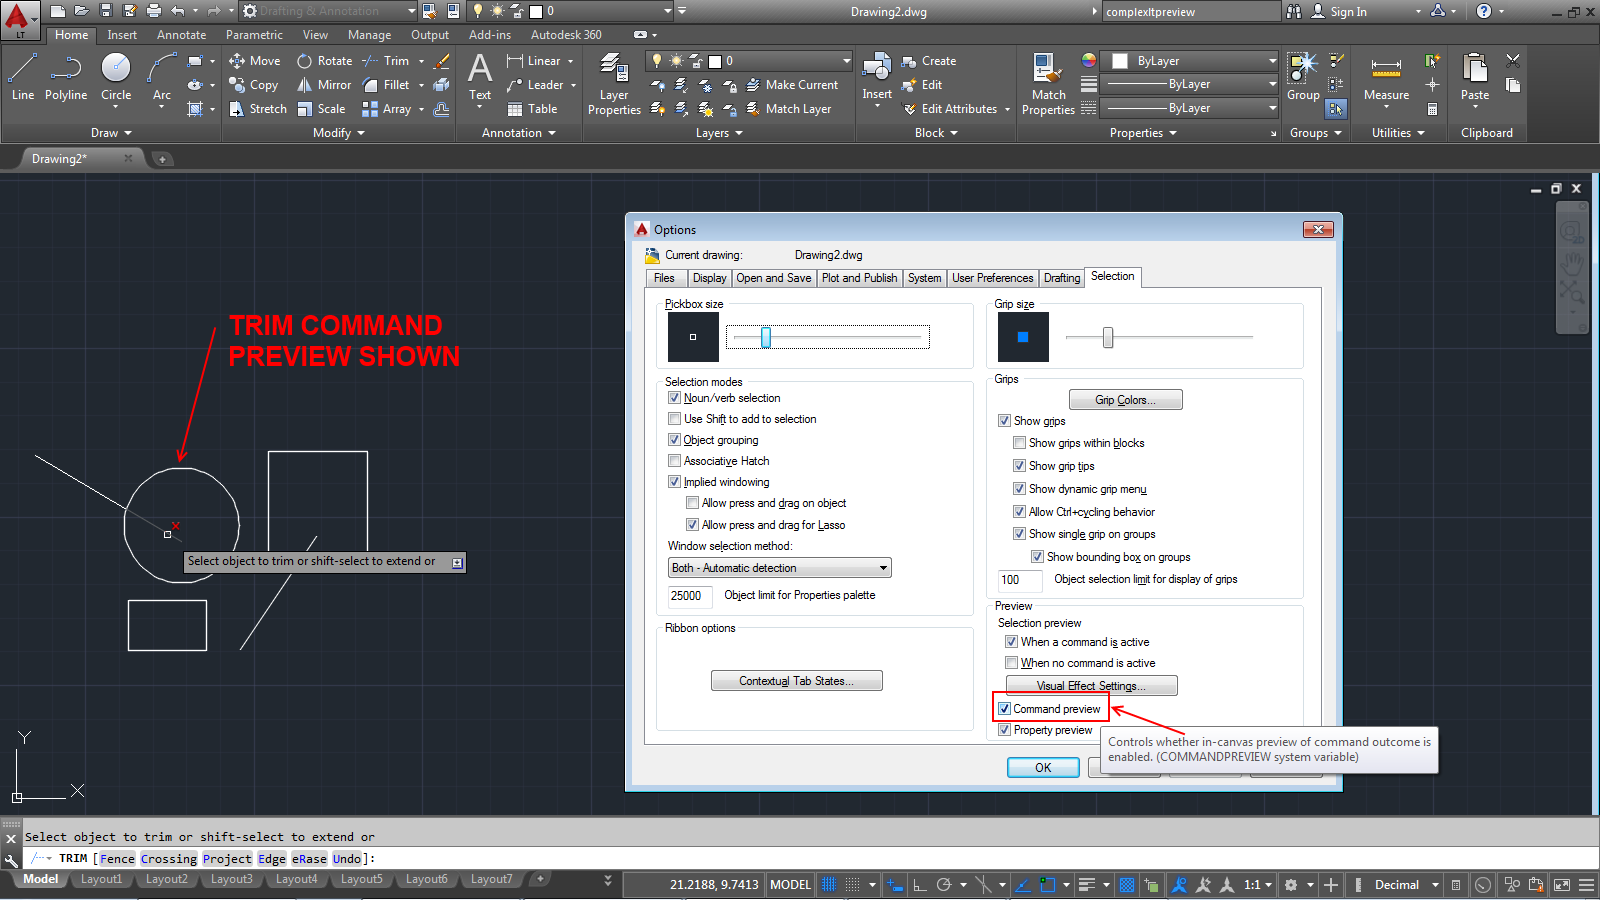 Autocad Lt 2015 Enhances Them And Offers More Flexibility With Their Use  Once Created, A Bright Blue Boundary Clearly Identifies The Active Viewport  You